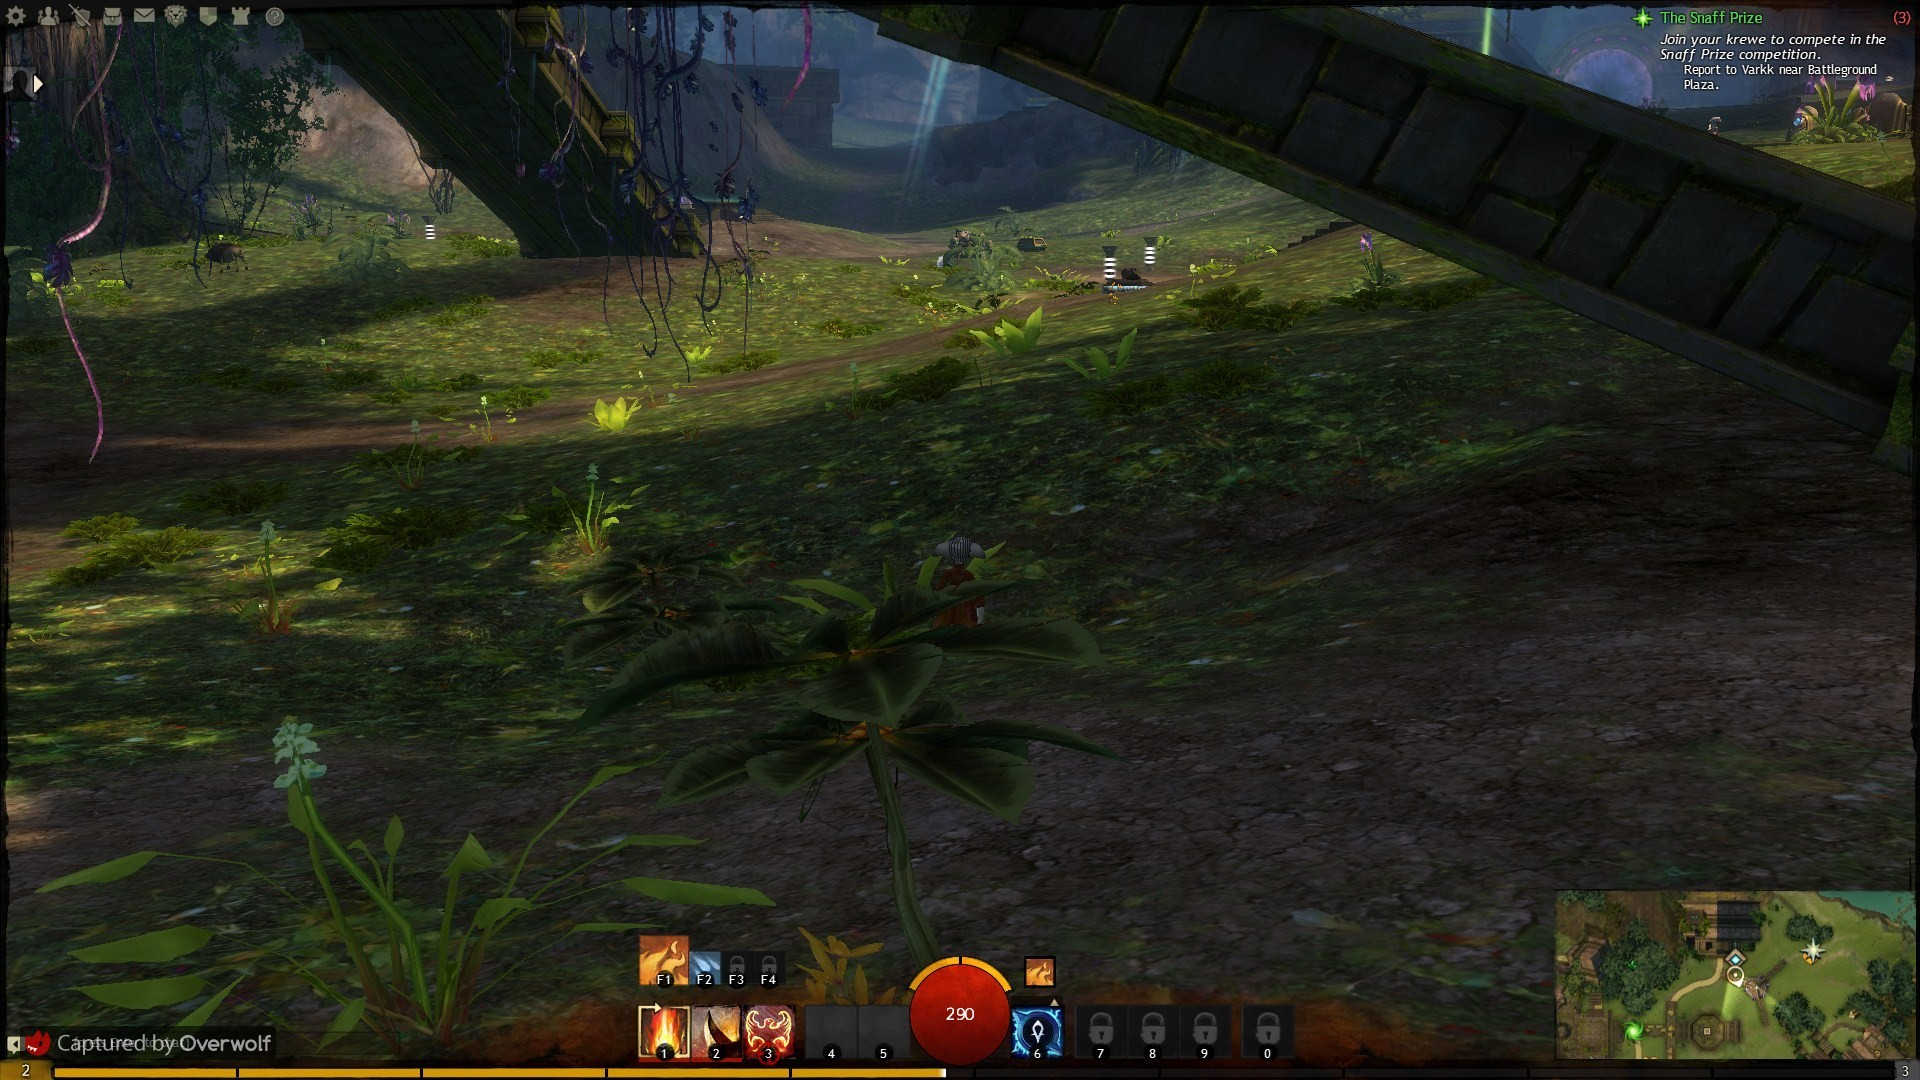 GW2 FTW ... but slow lvl up :\